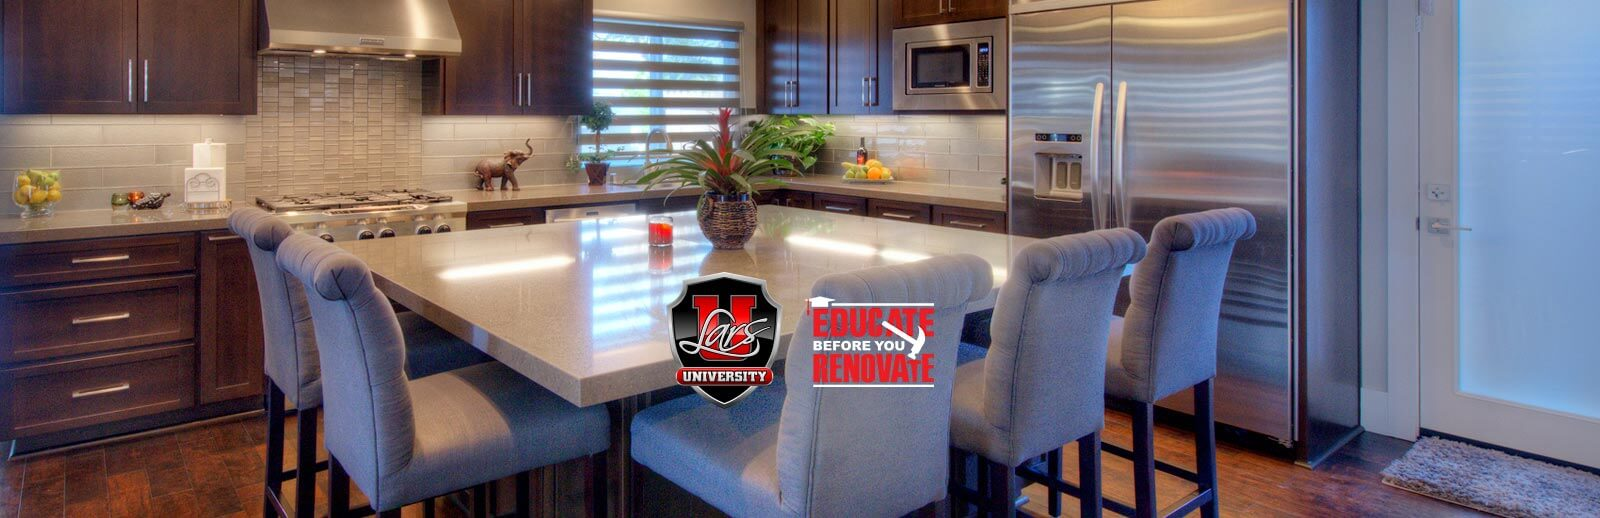 Kitchen Remodel San Diego Fascinating San Diego Remodeling  Home Remodel & Renovations  Lars . Design Ideas